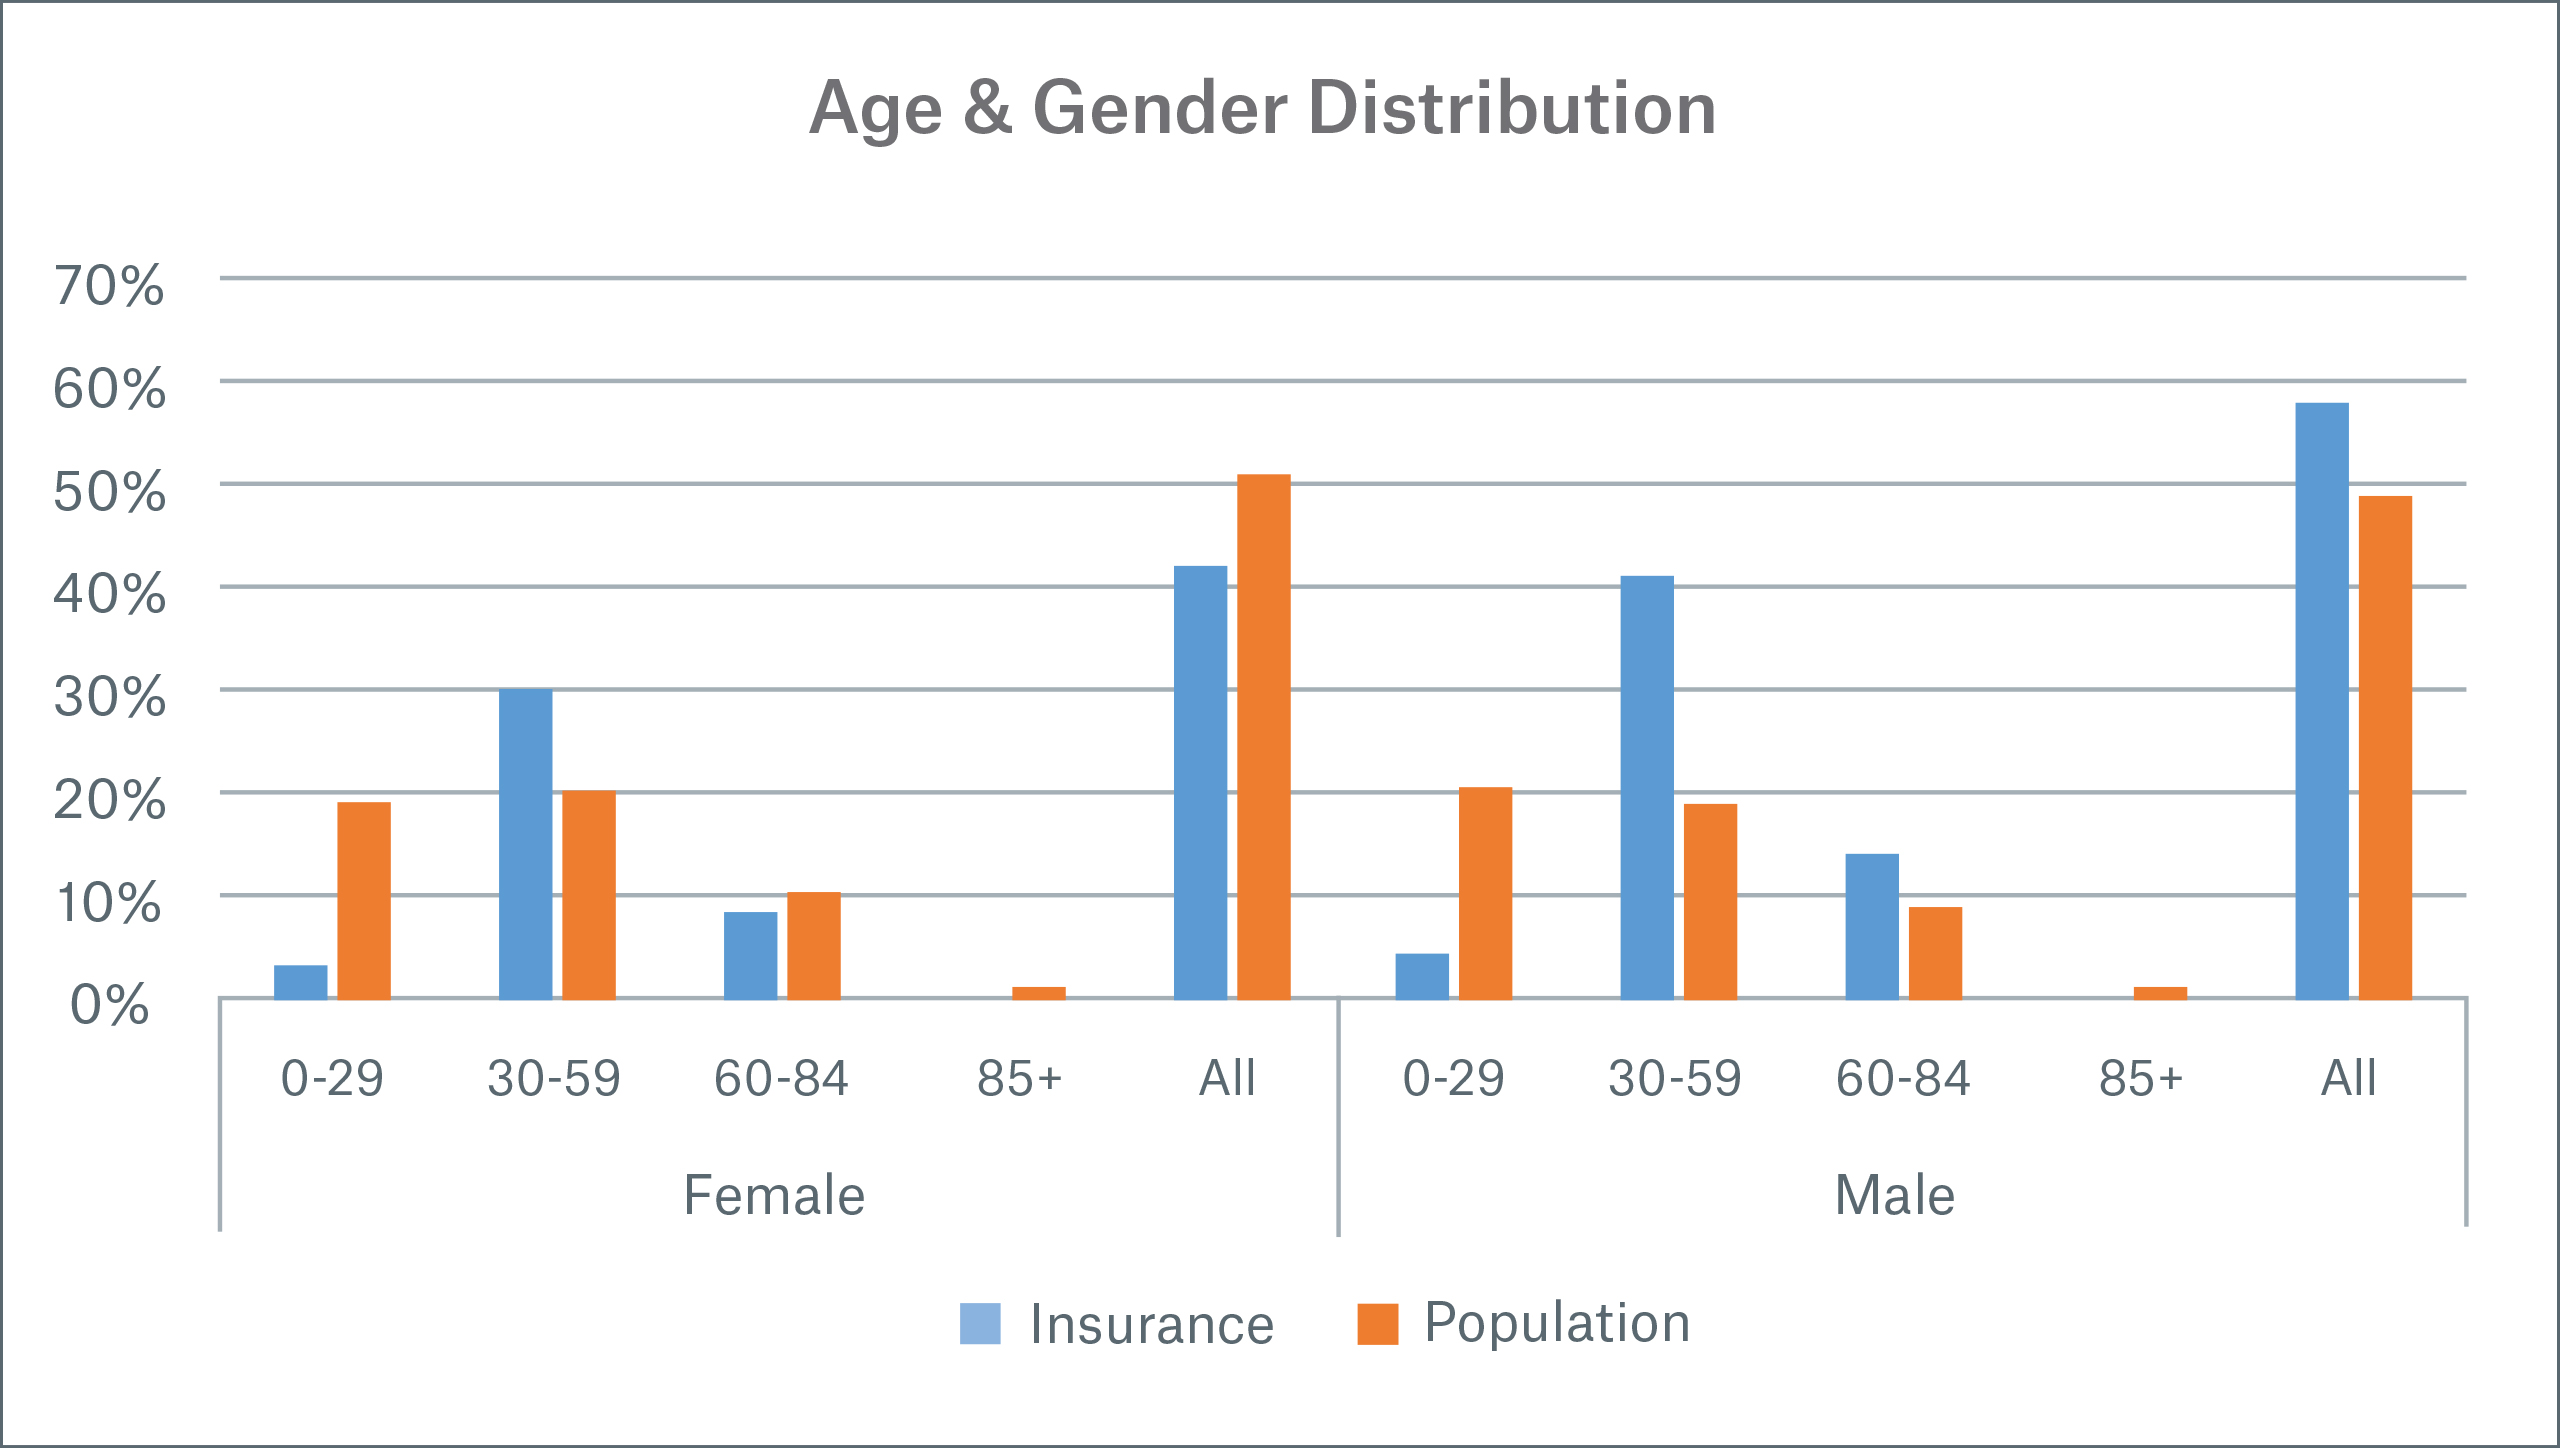 Appendix Image Age and Gender Distribution